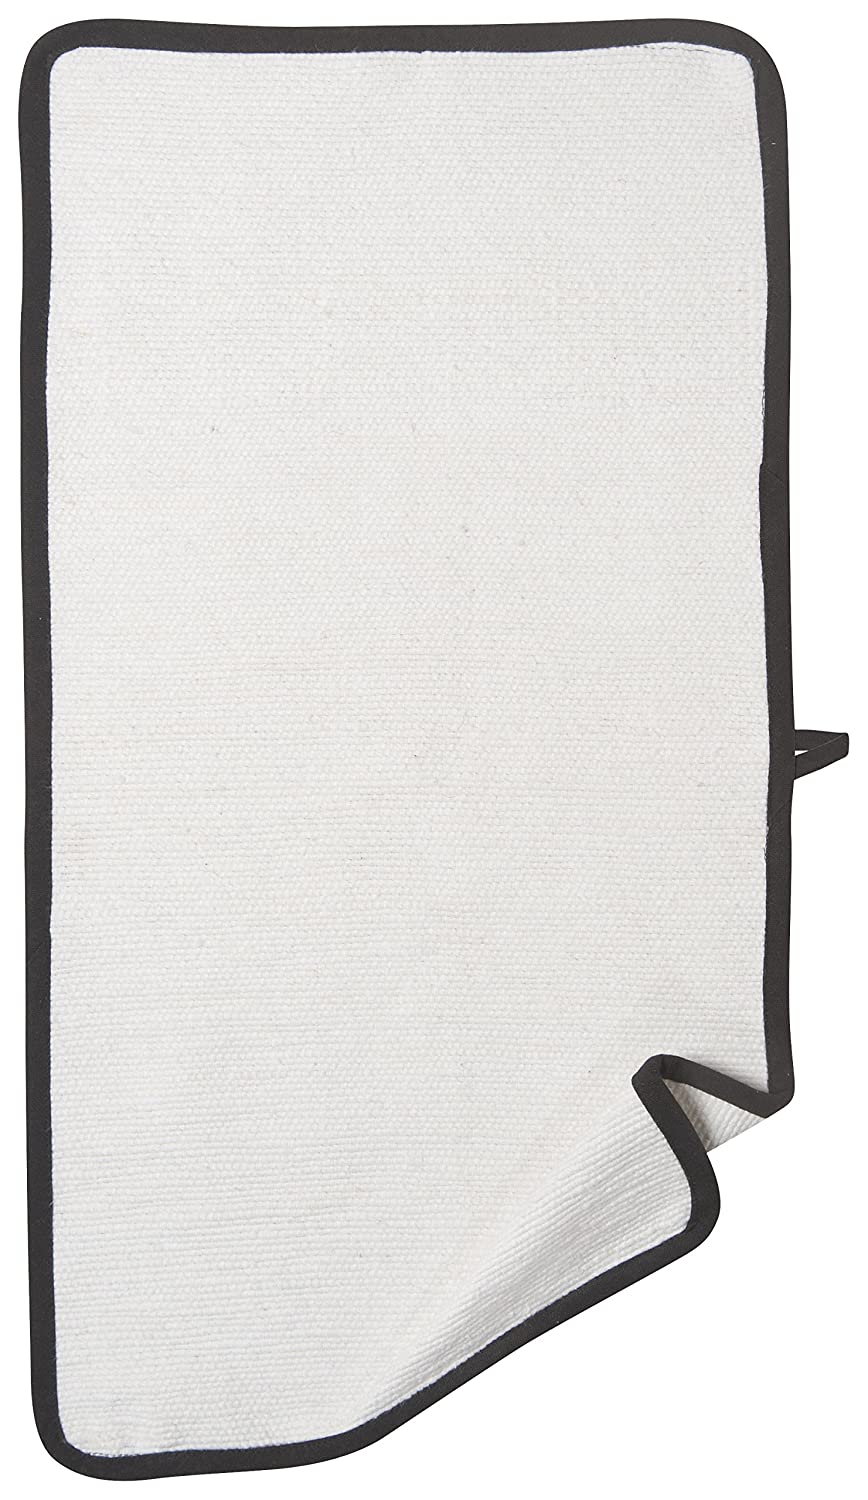 Now Designs Oven Towel, White